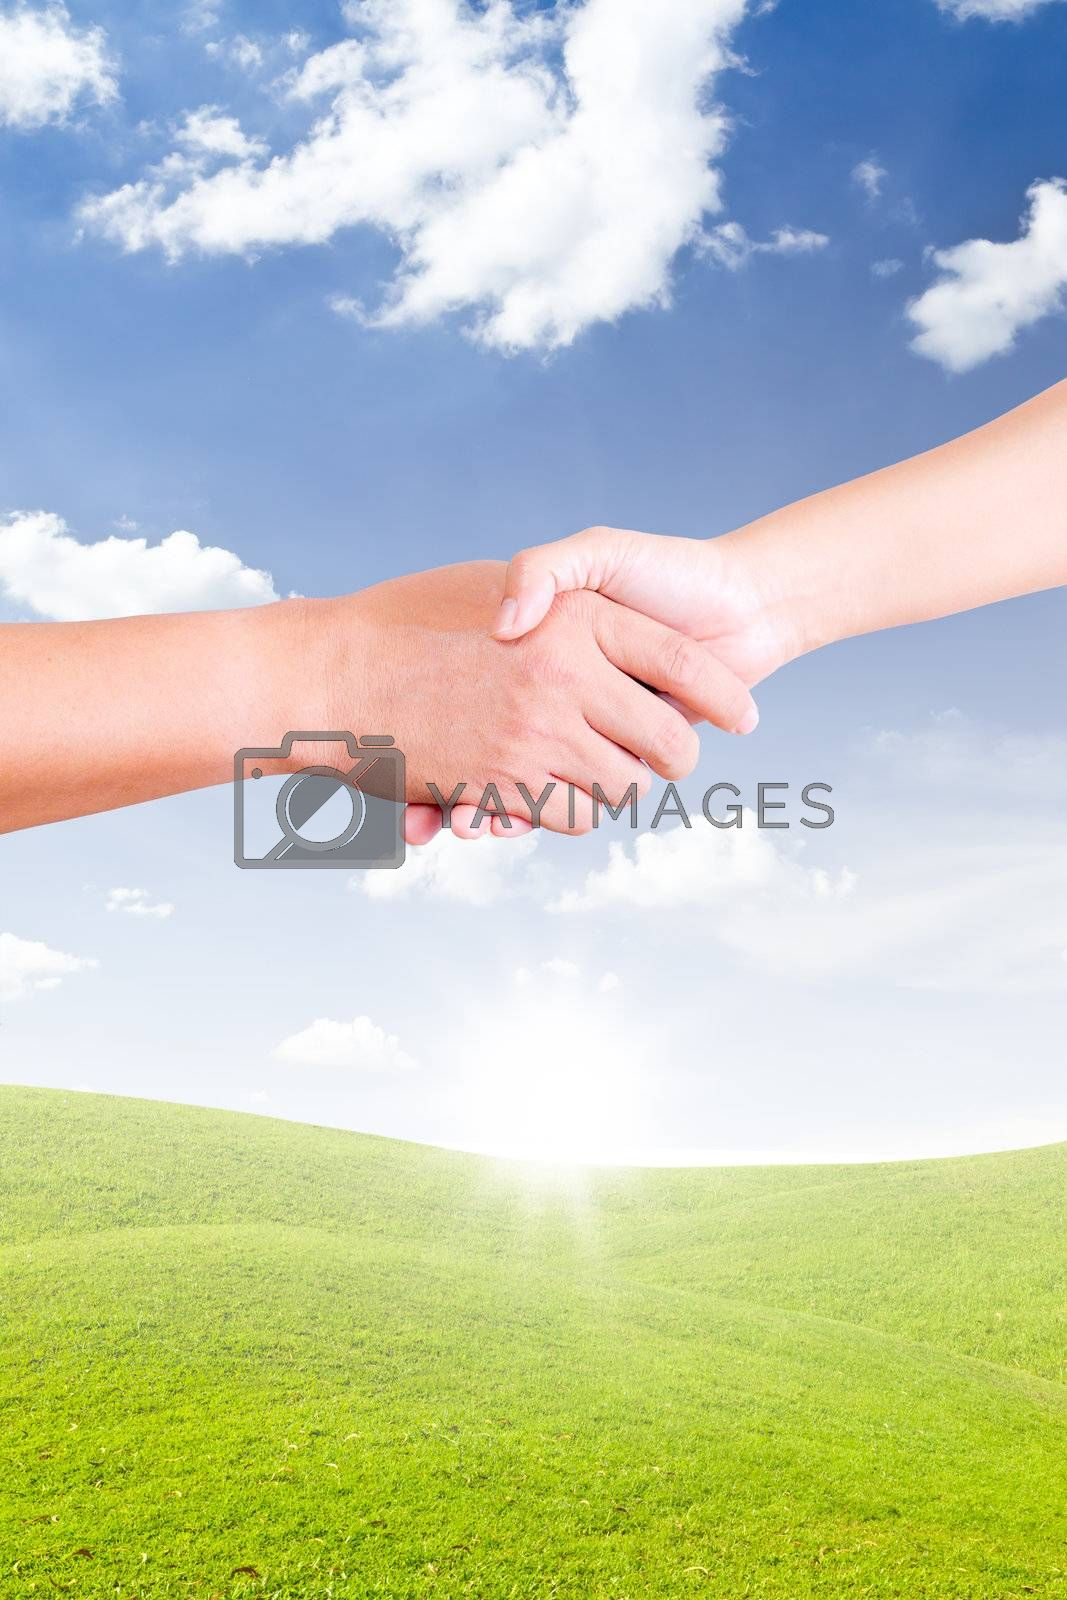 hand shaking for new day